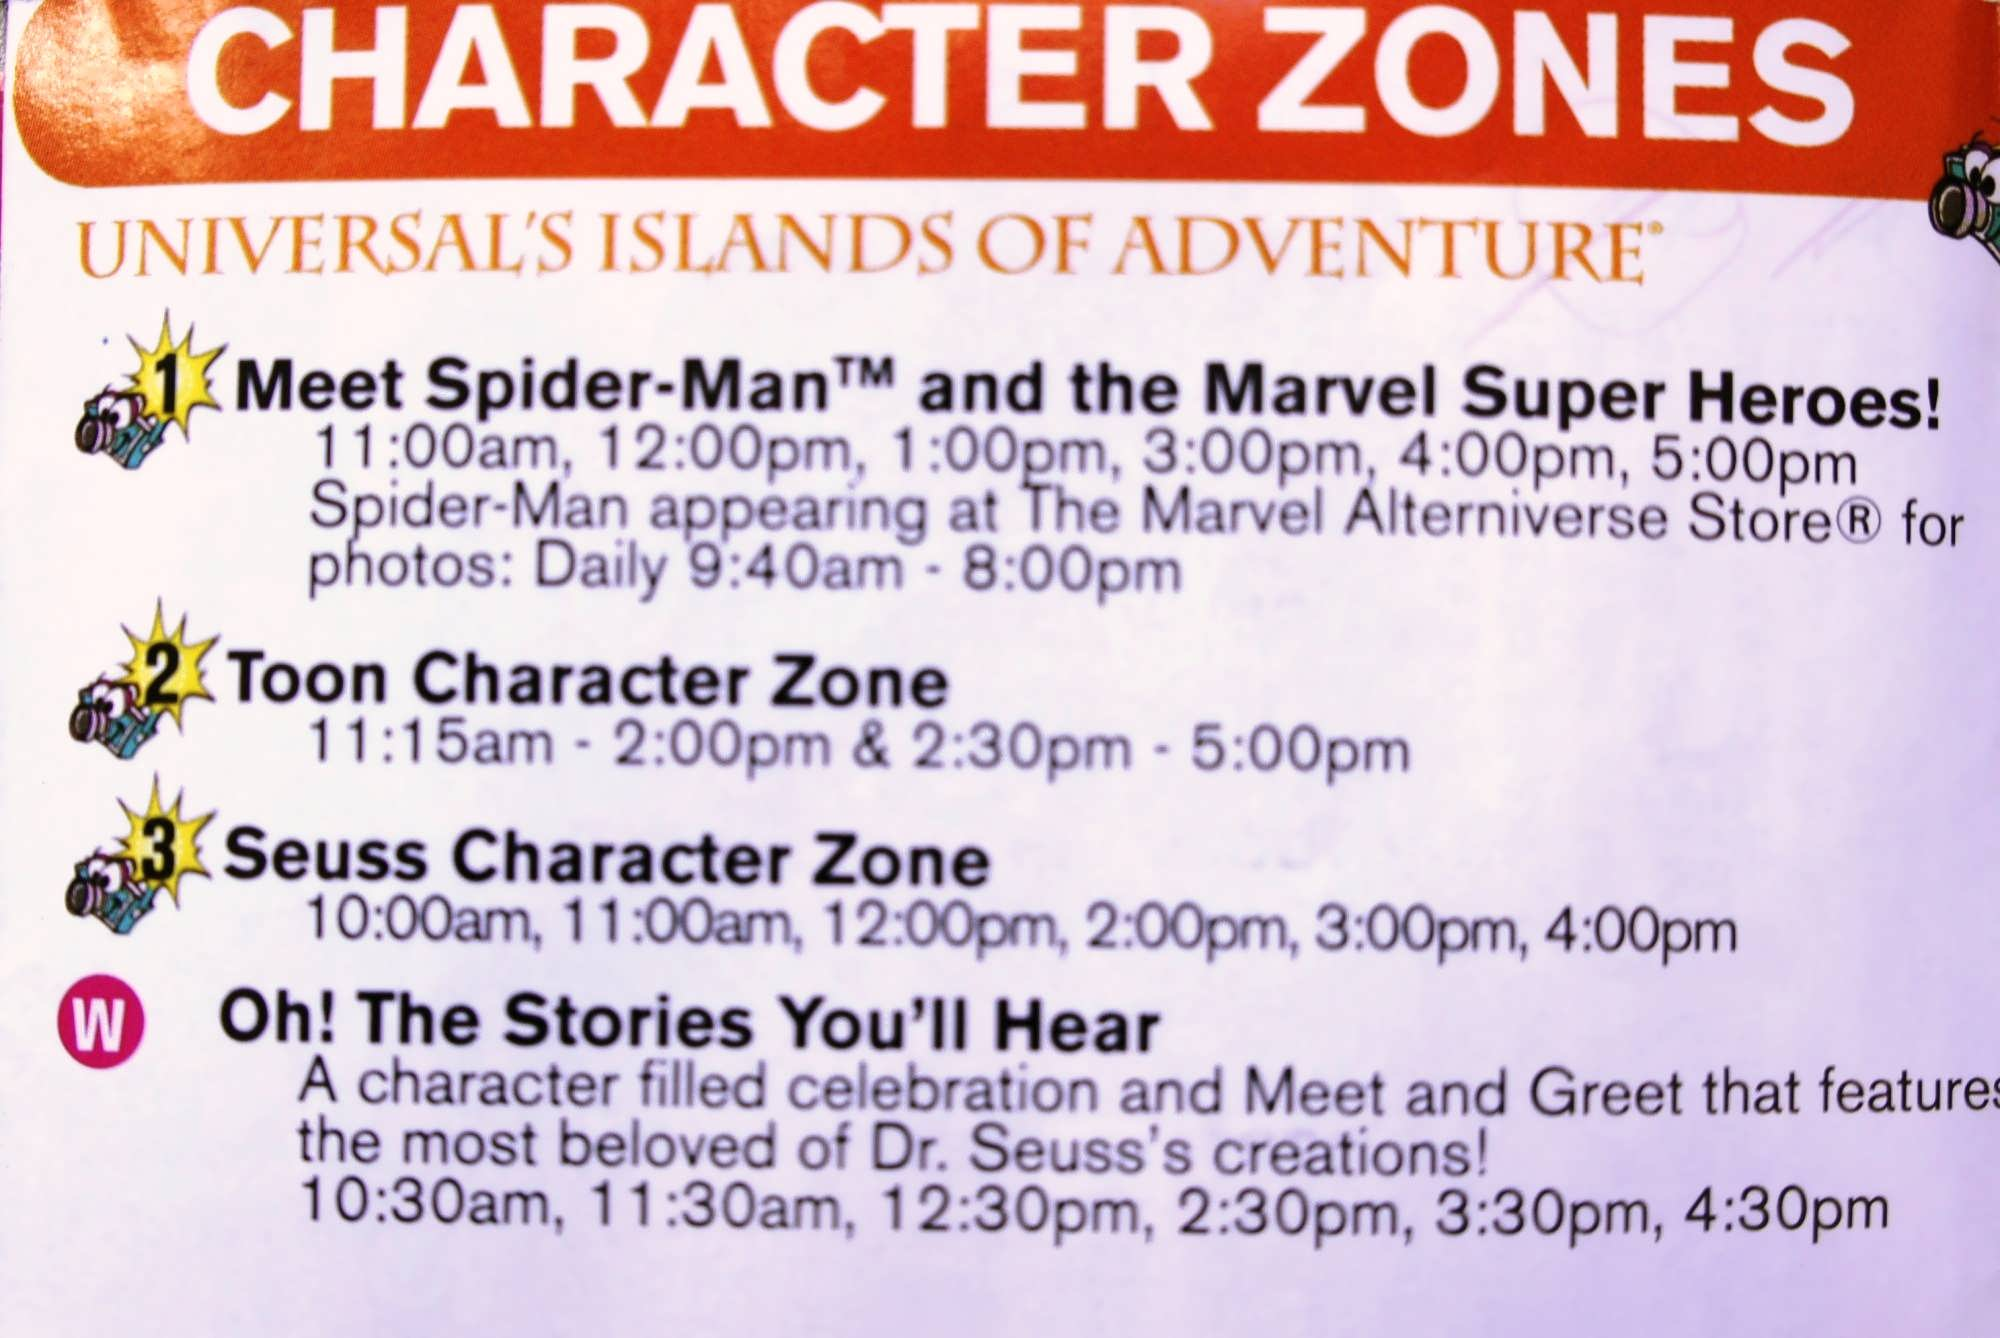 Character sample schedule at Universal's Islands of Adventure